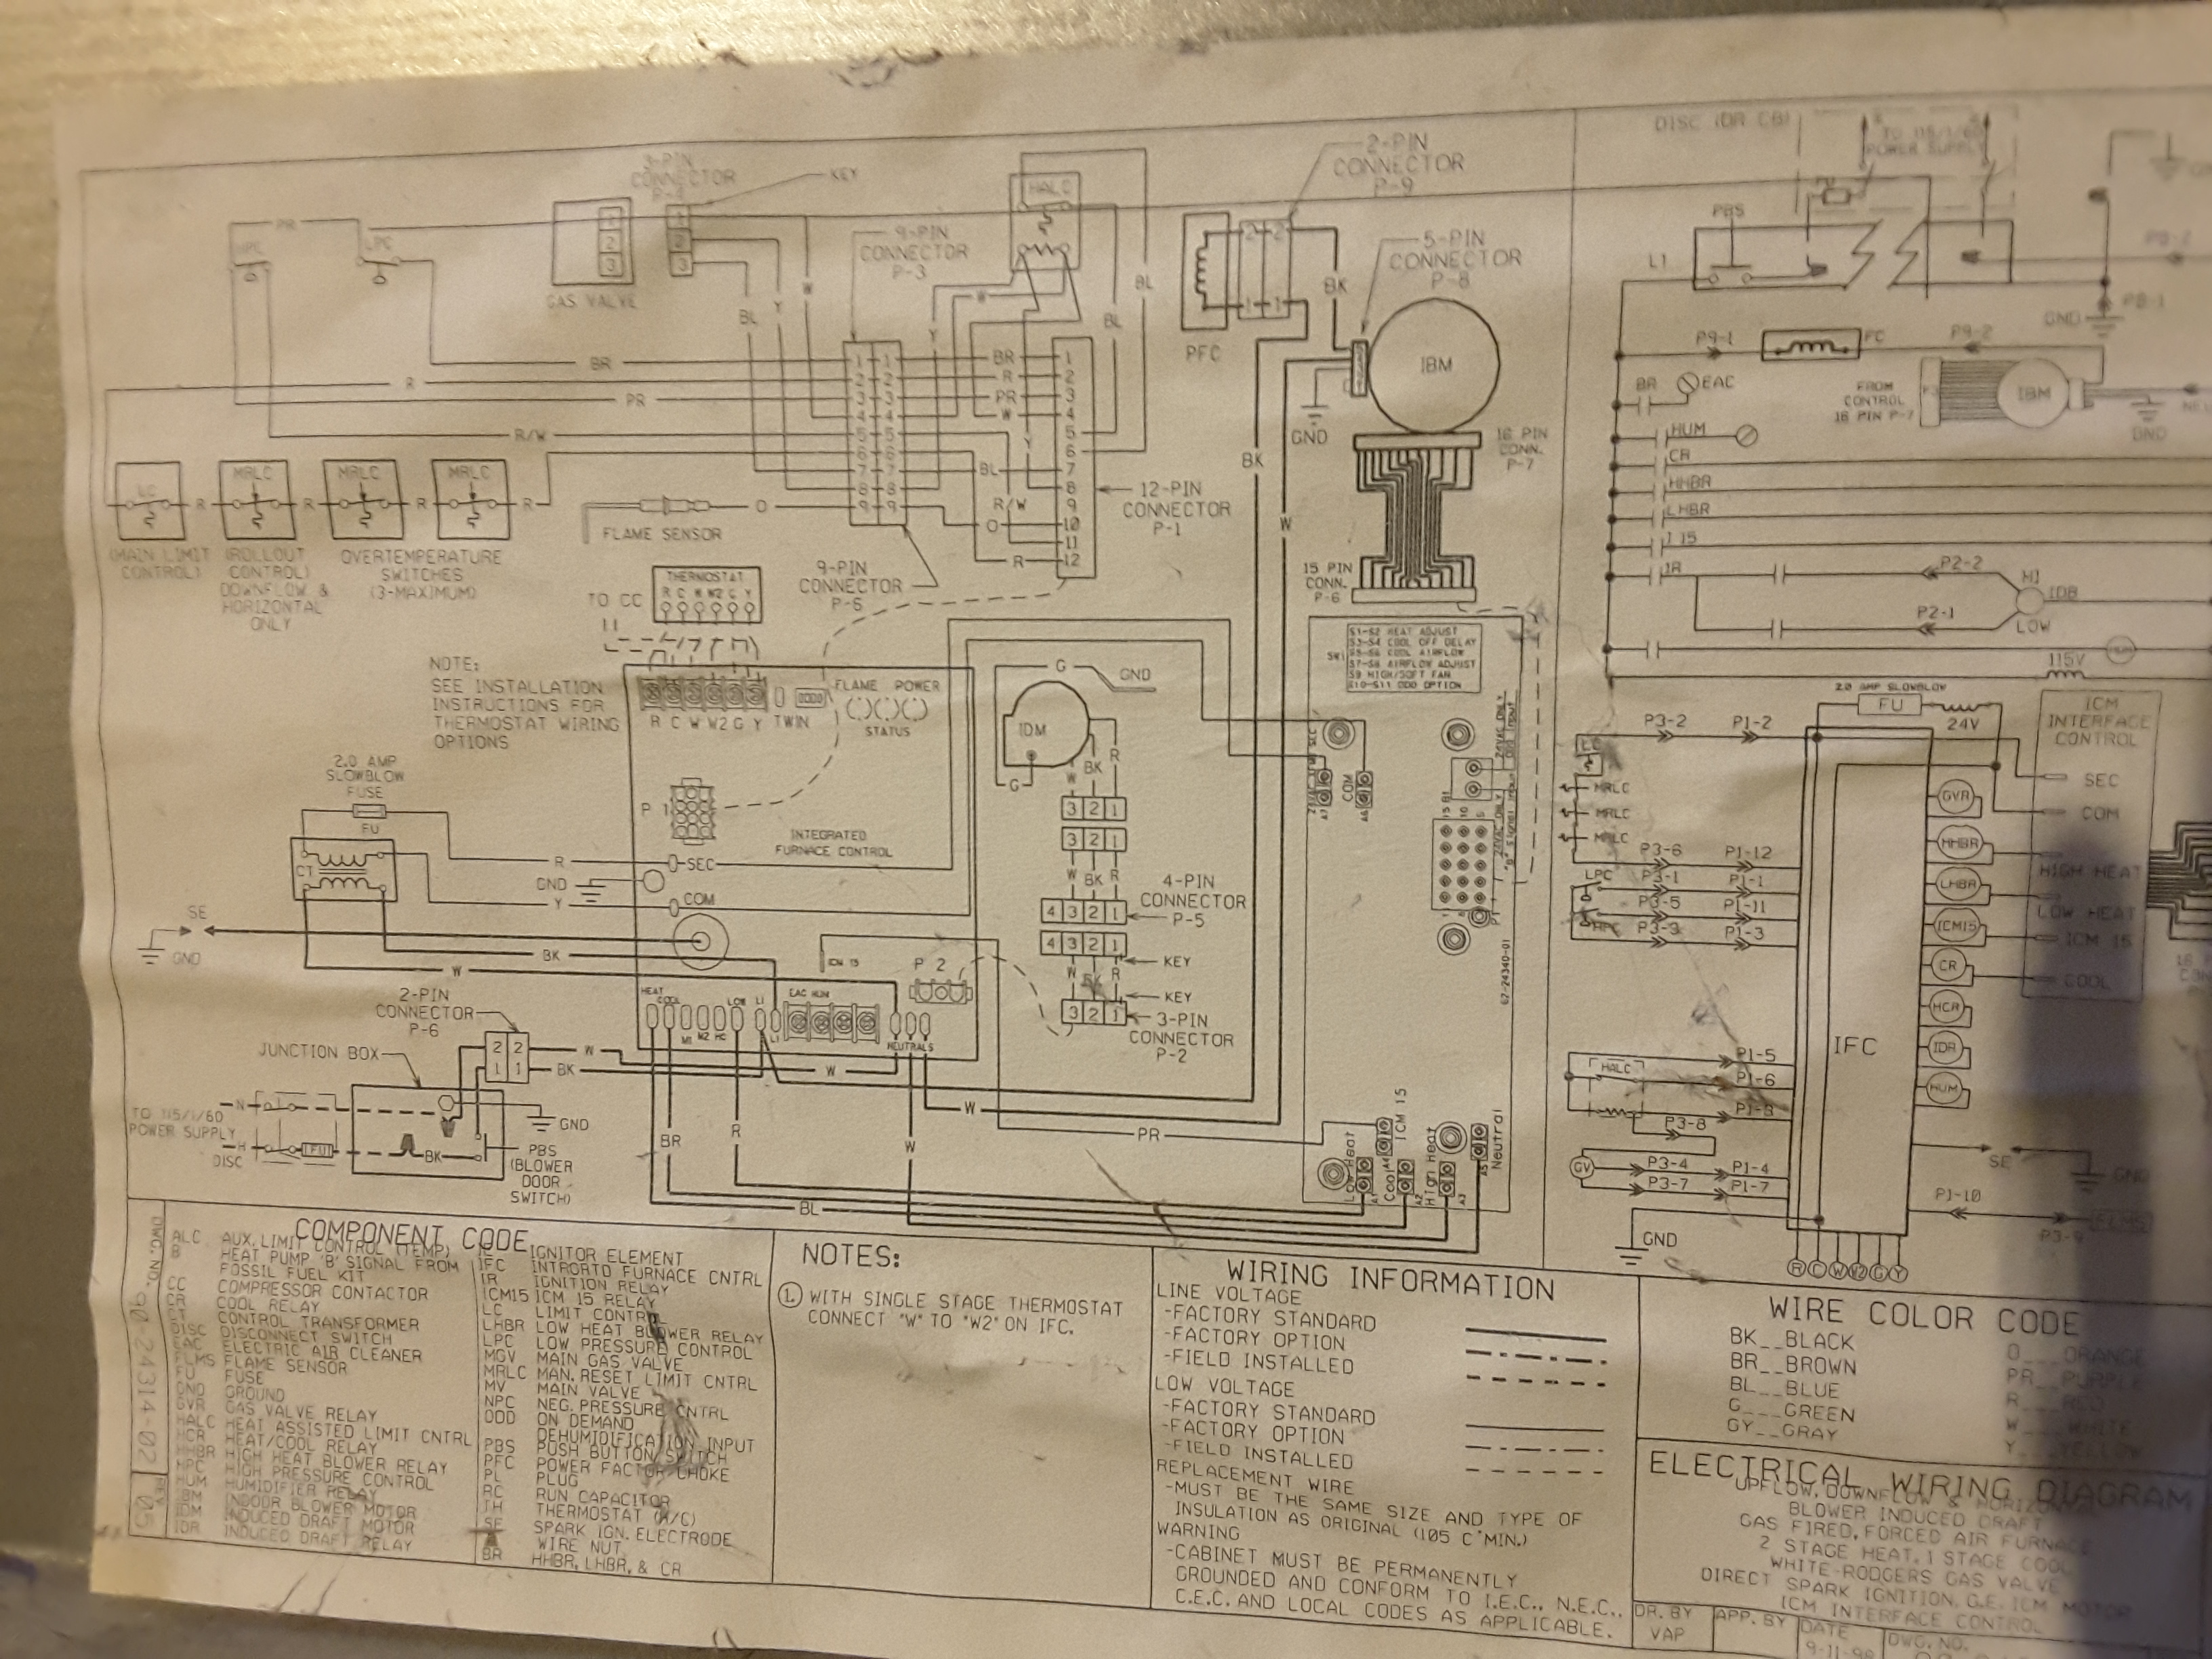 I Have A Ruud Silhouette Ii Plus Lxe Two Stage Furnace This Morning Schematic Wiring Diagram 1452376293404 1671509041